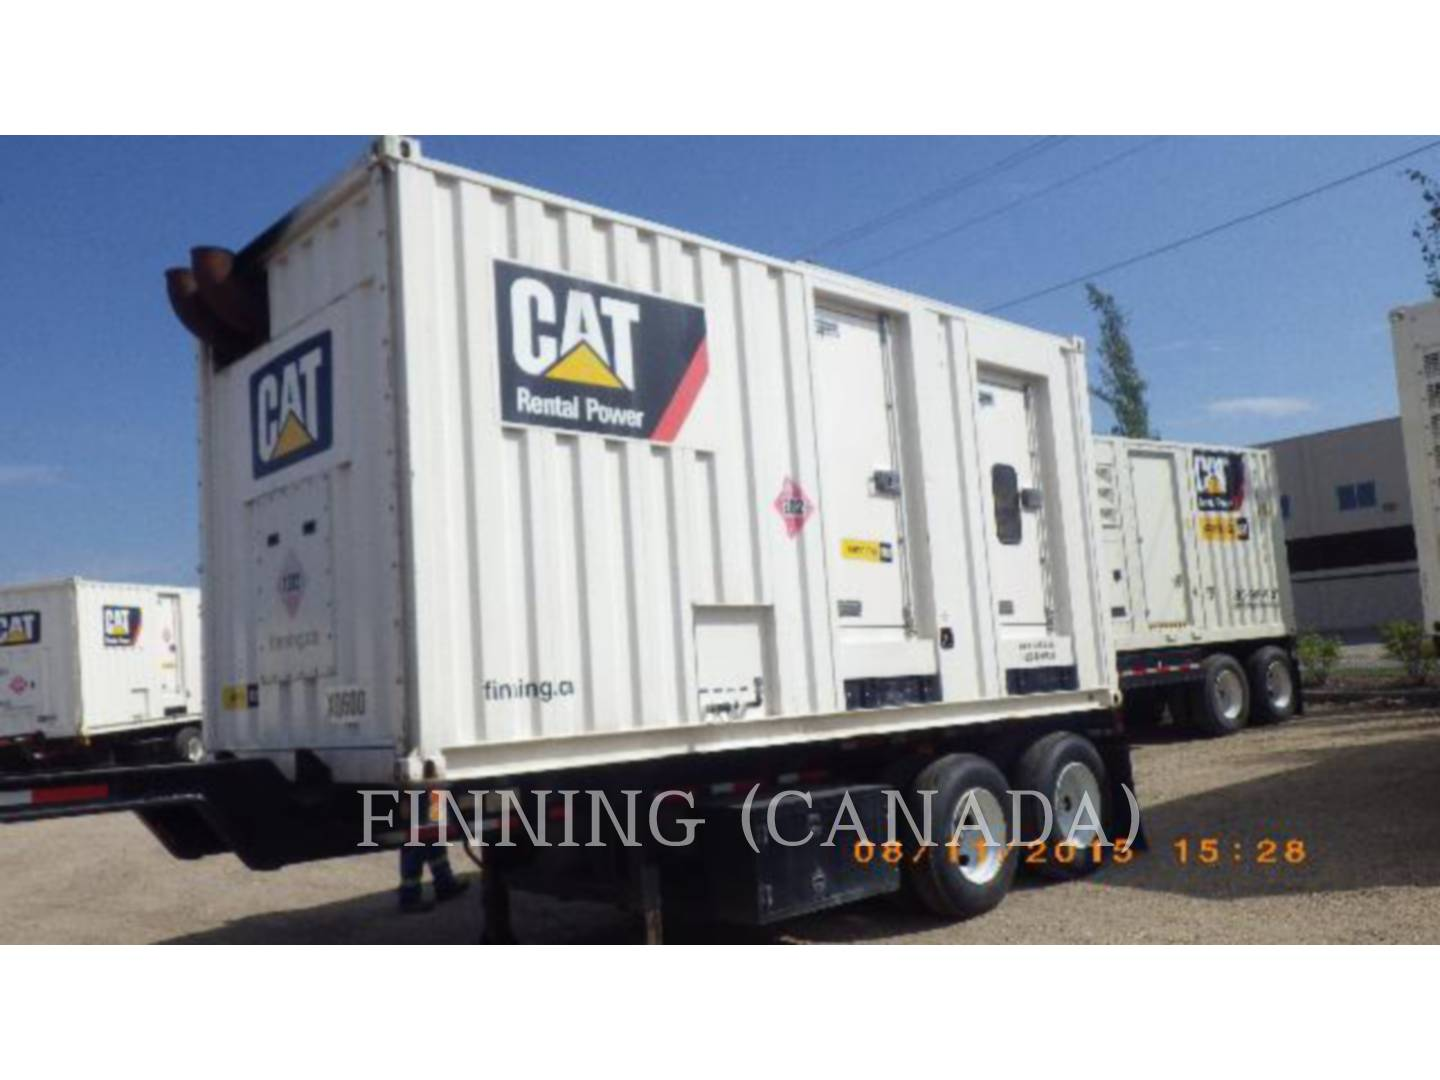 Used Mobile Generator Sets For Sale | Finning Cat